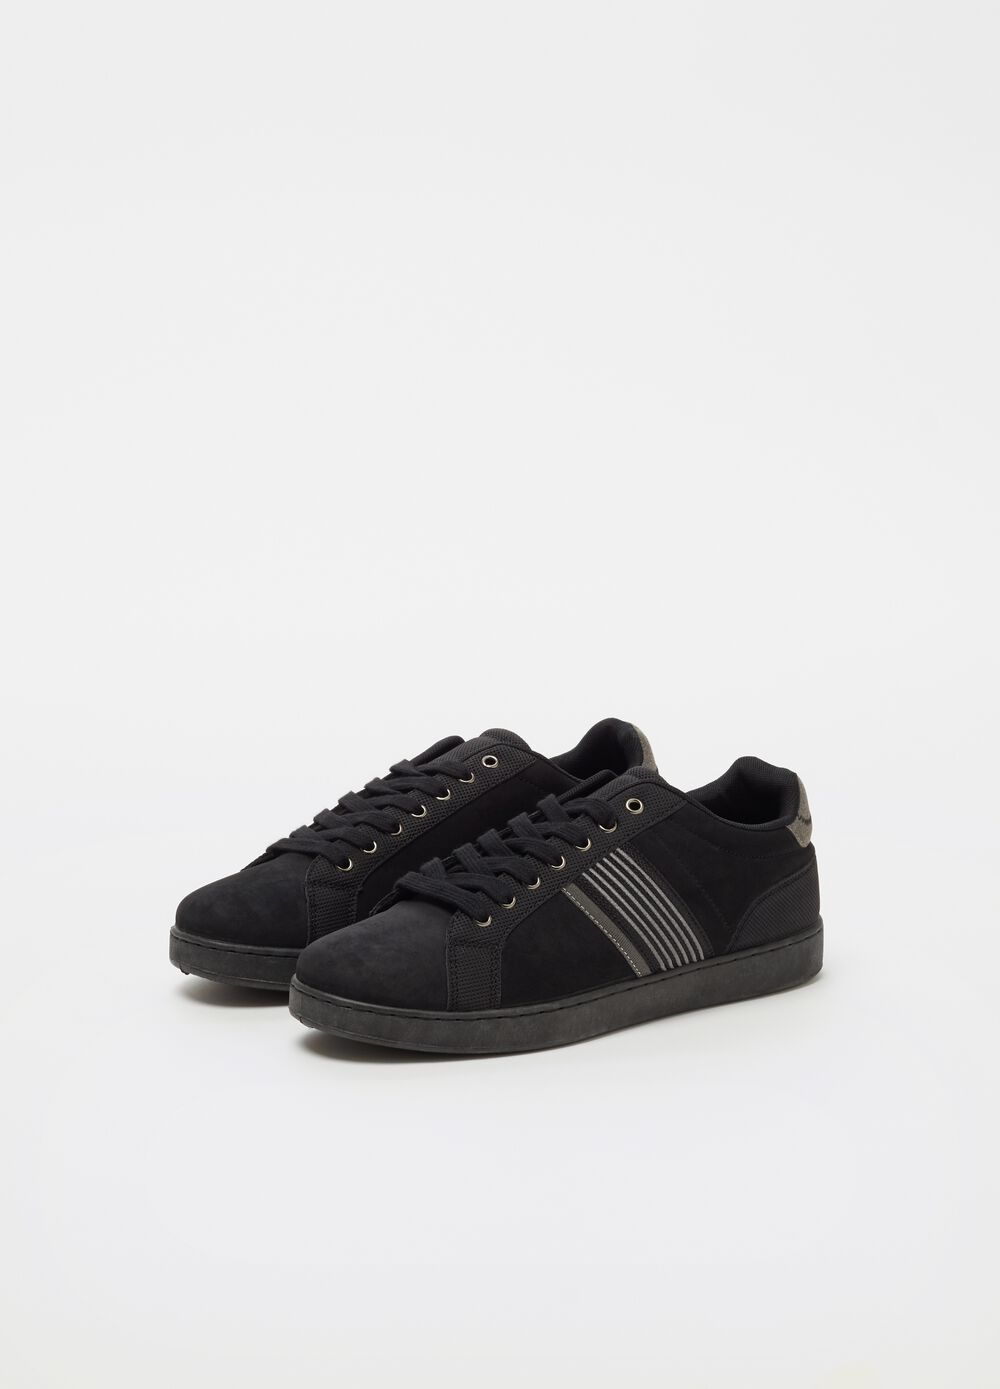 Low sneakers with suede effect